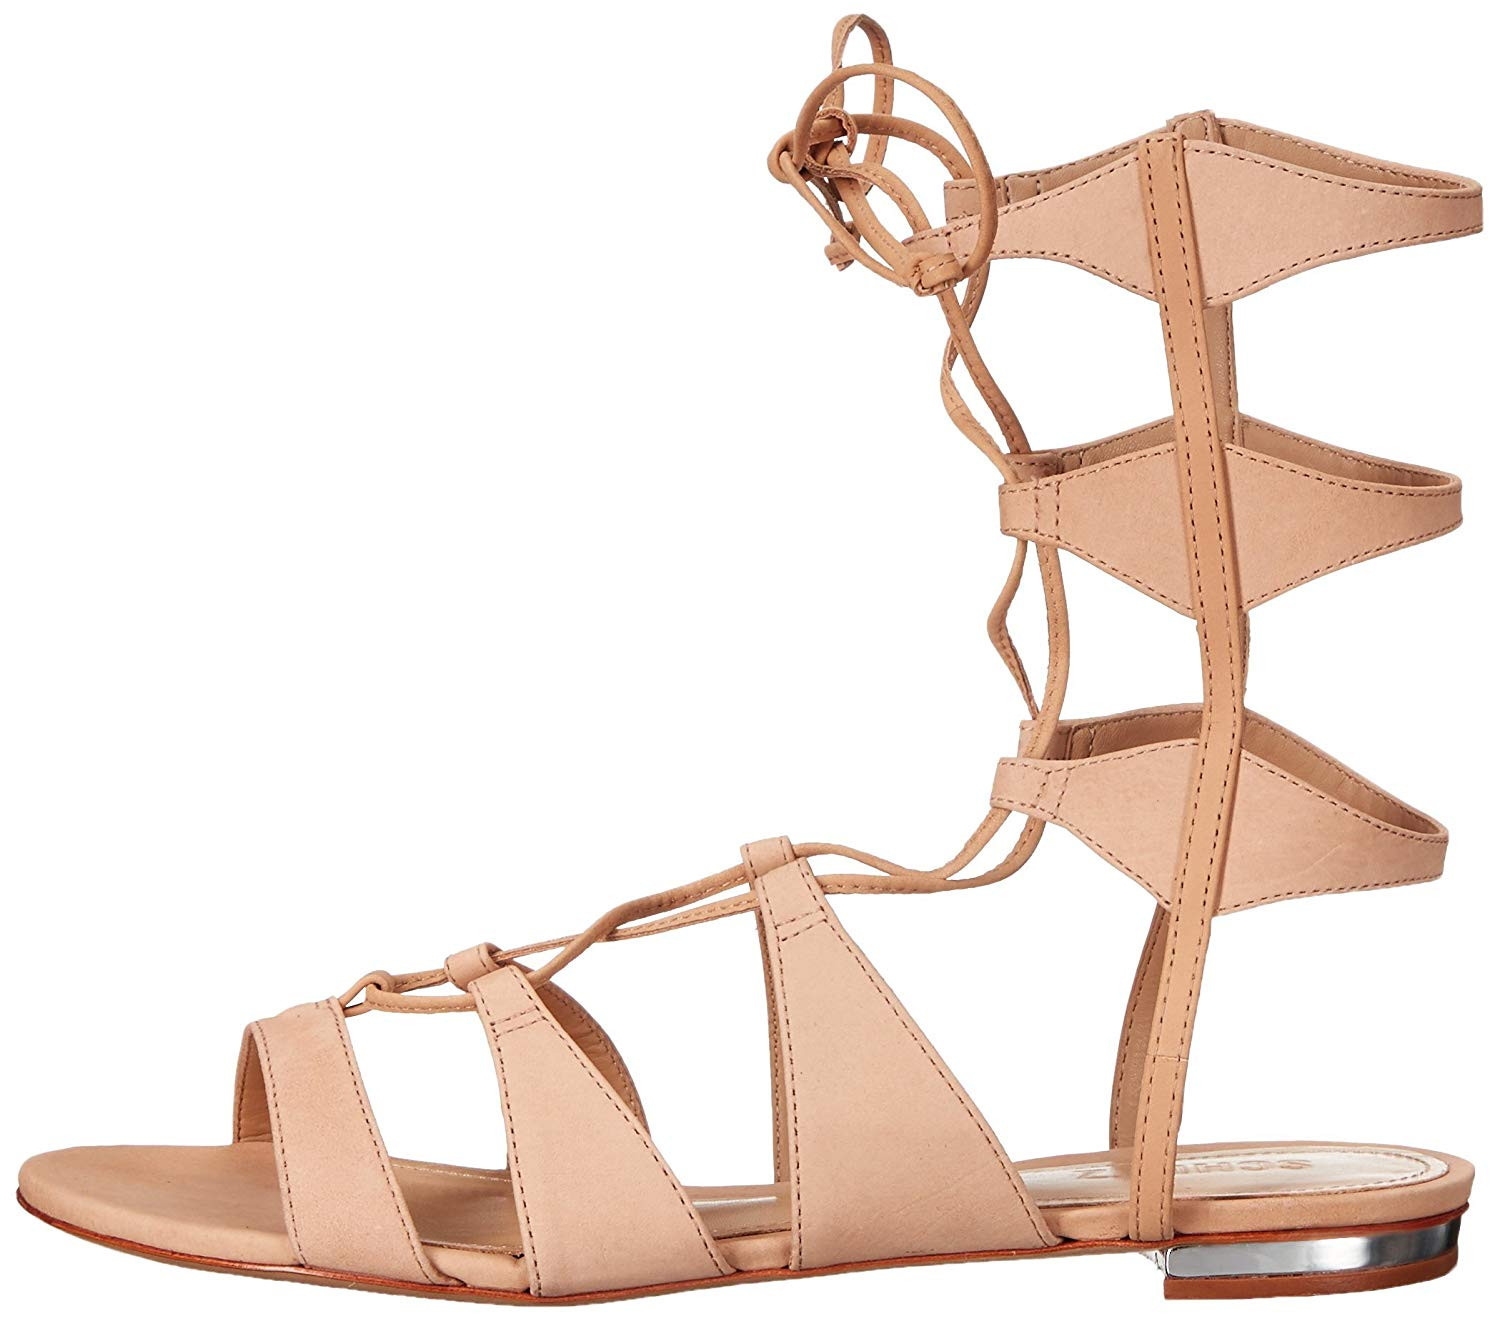 c0ccd842354a97 Details about SCHUTZ Womens Erlina Open Toe Casual Gladiator Sandals